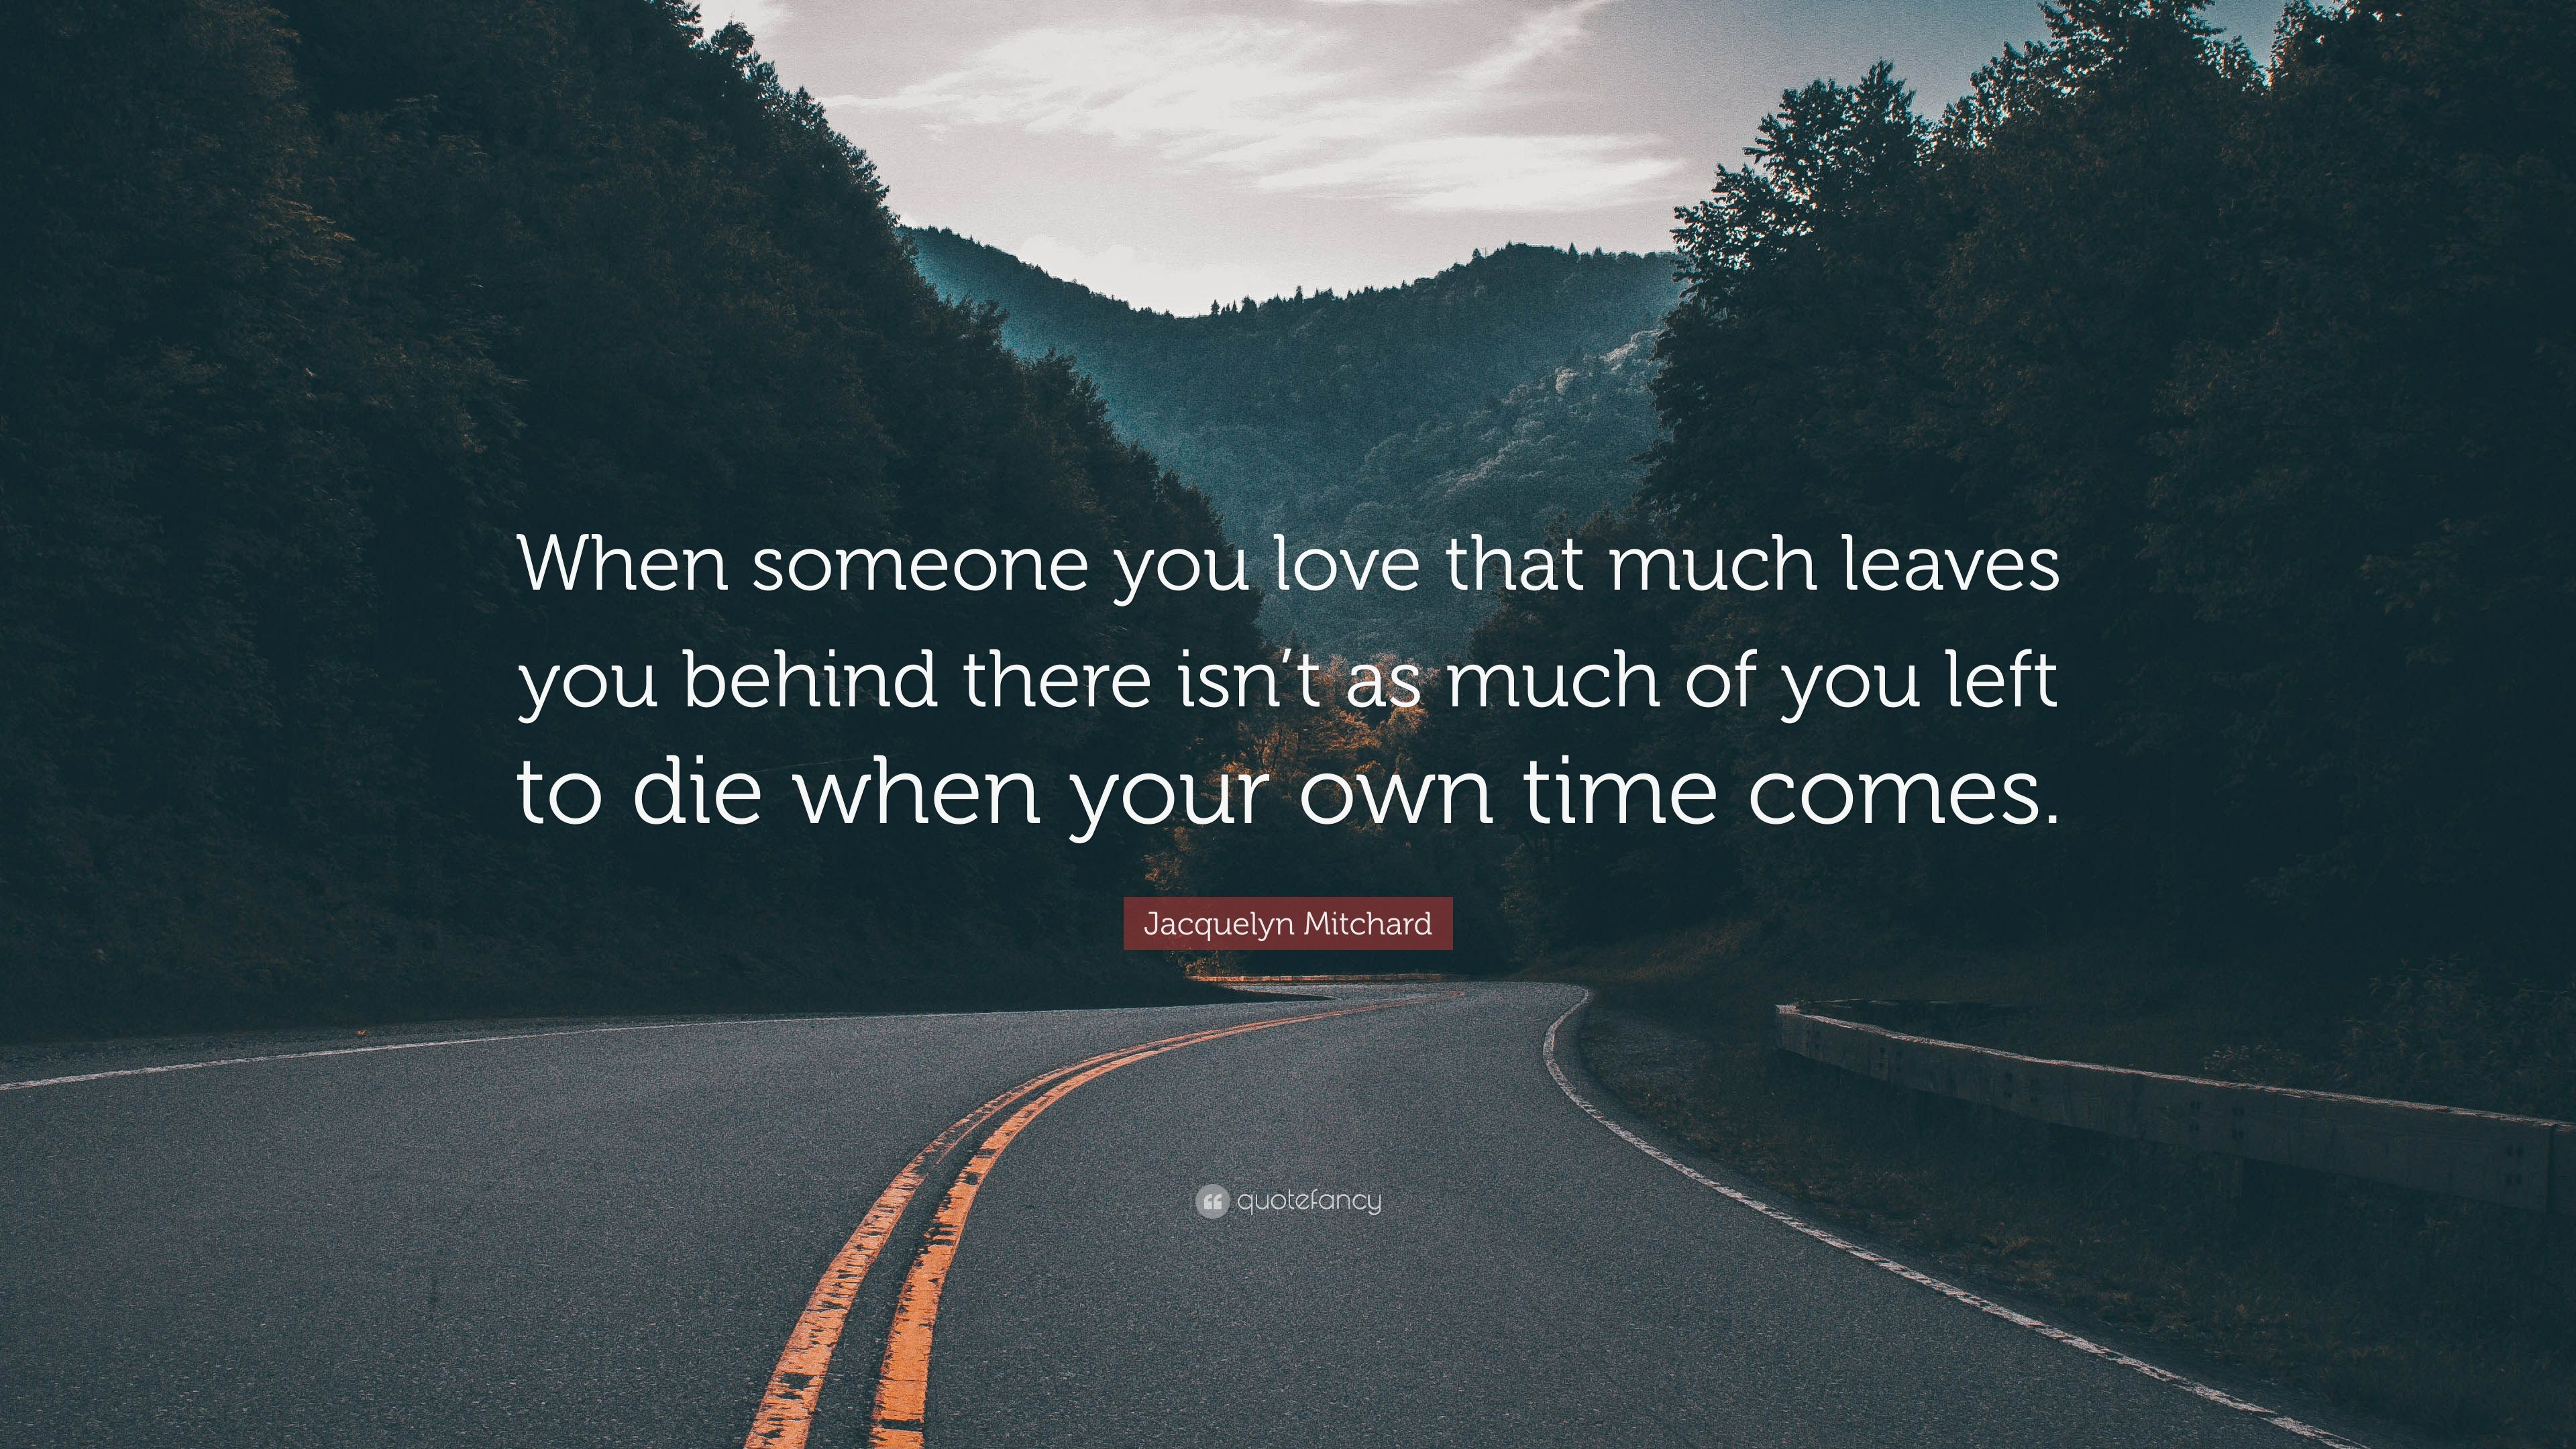 Jacquelyn Mitchard Quote When Someone You Love That Much Leaves